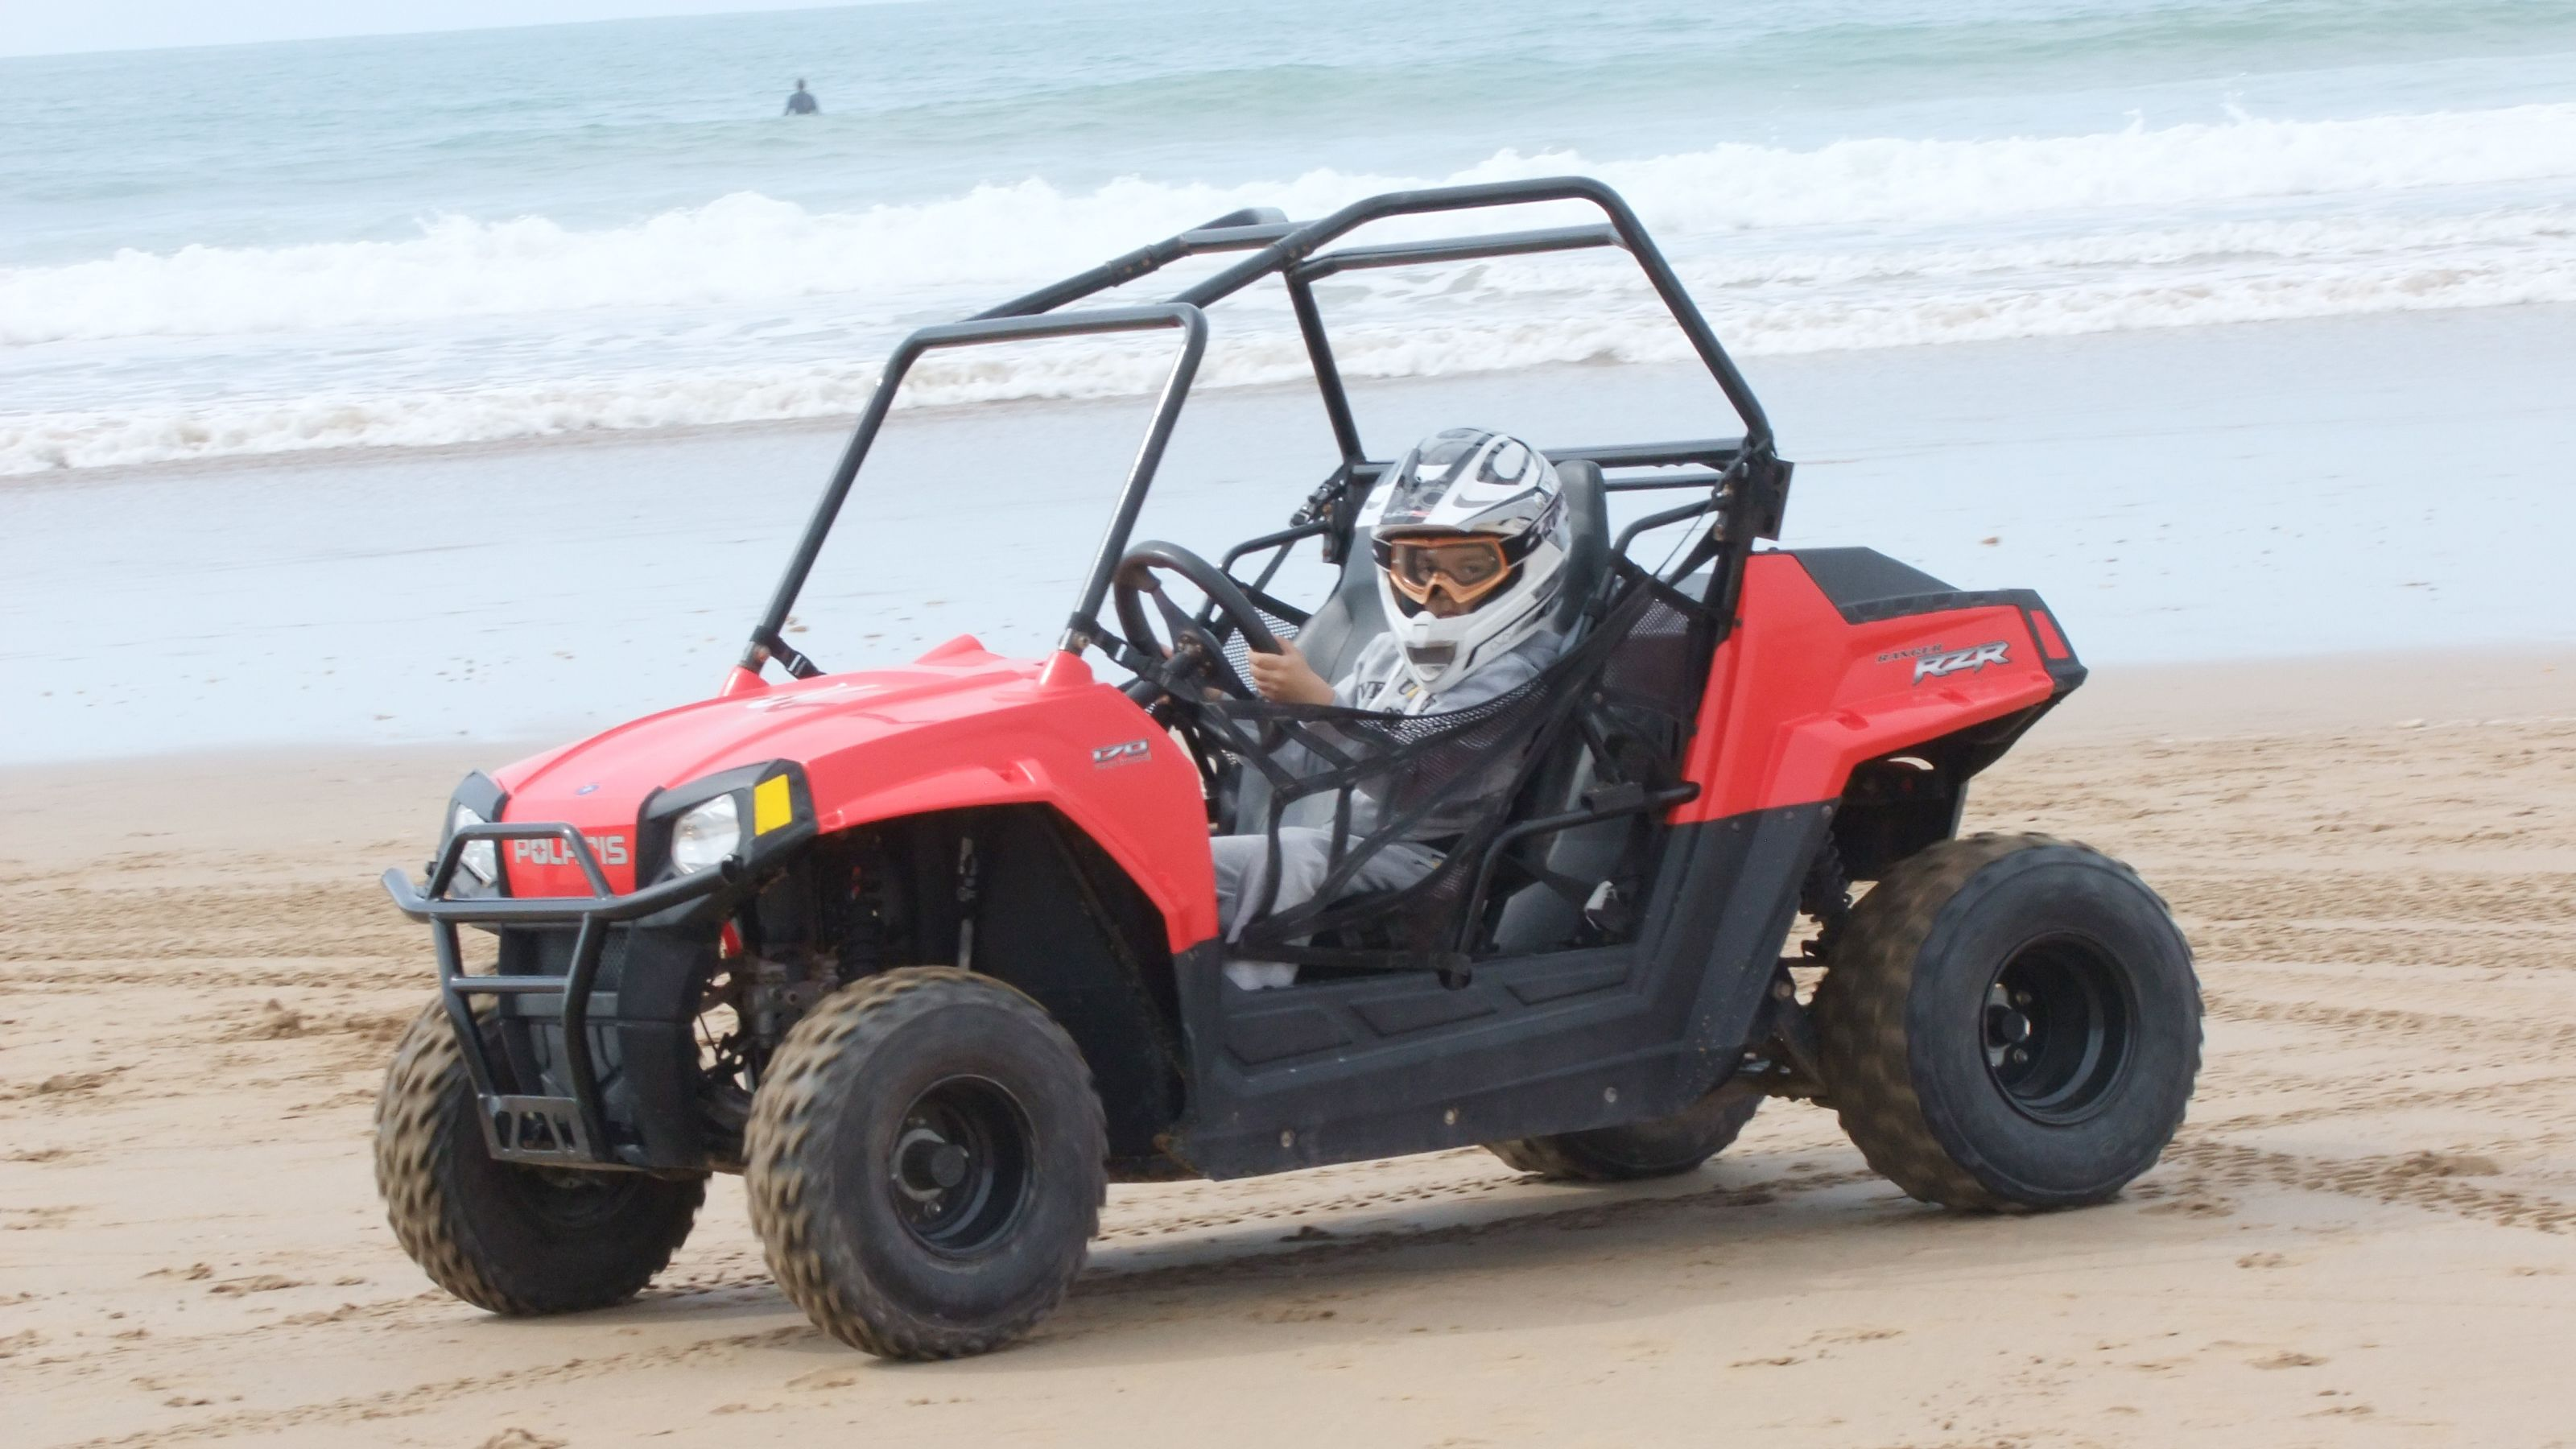 Kid driving a dune buggy on the beach near the water in Agadir